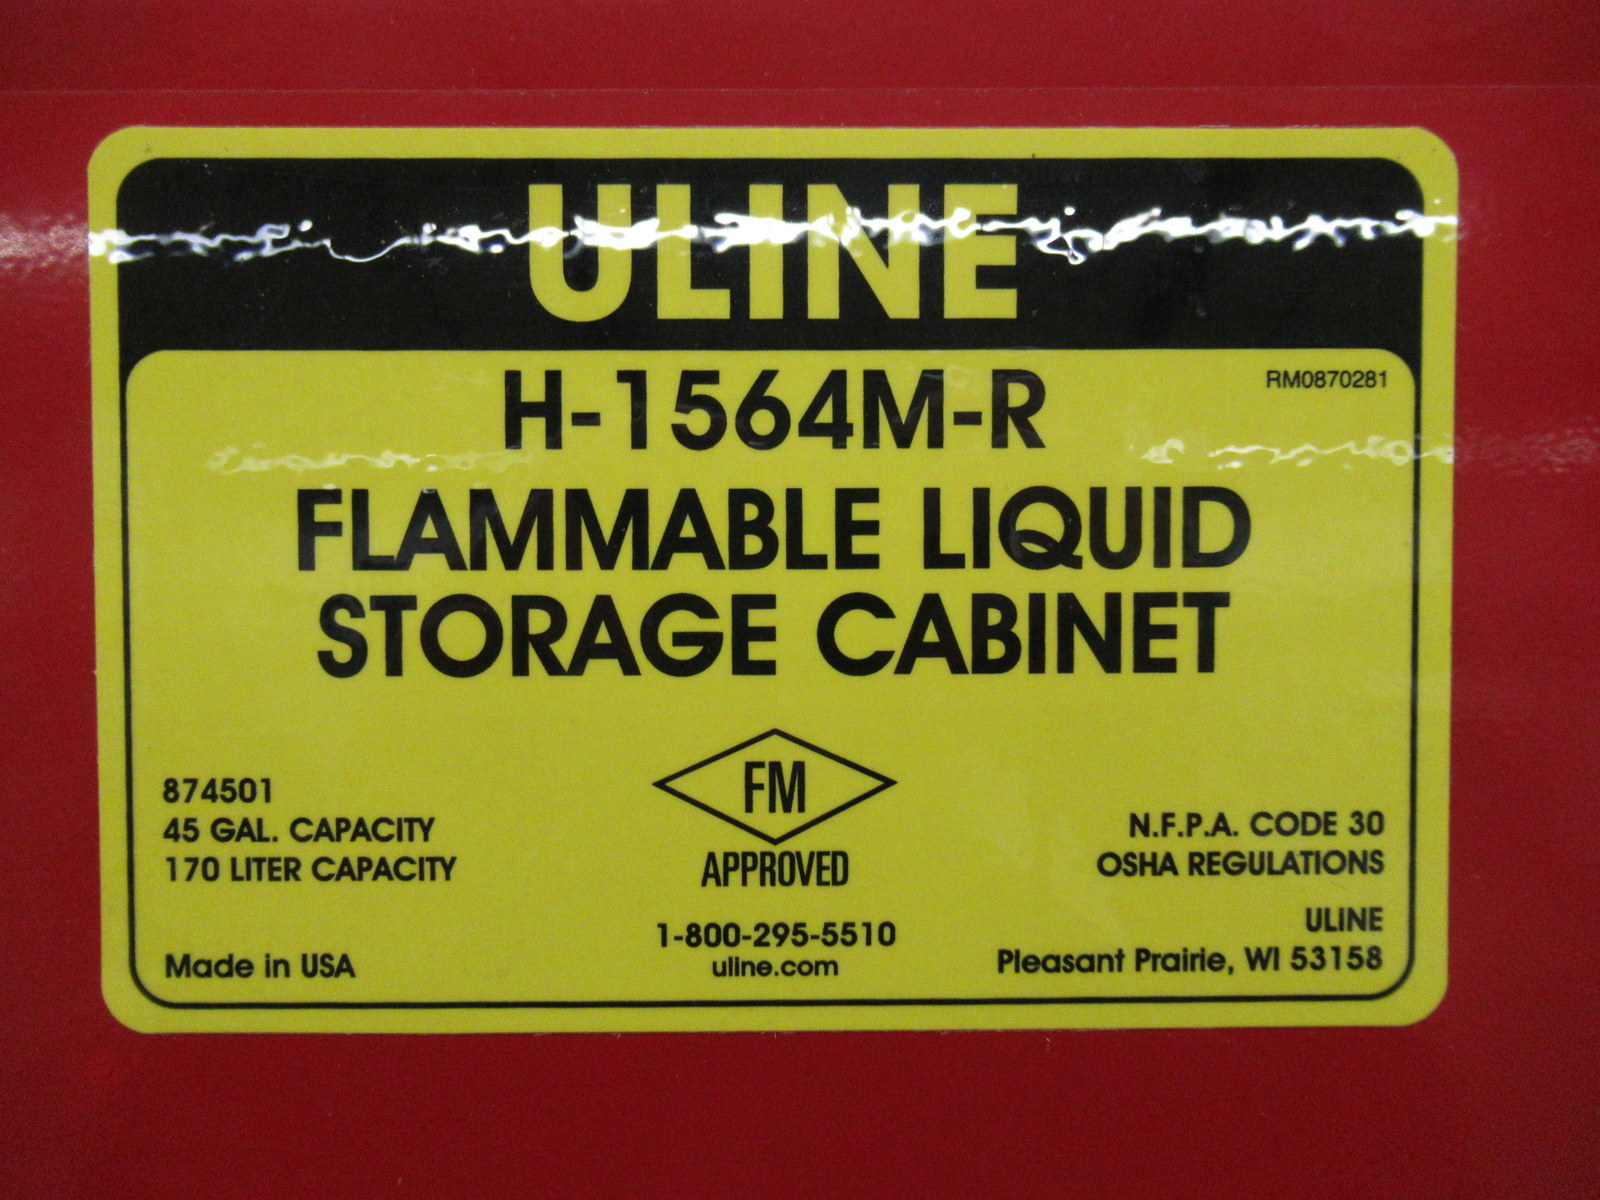 Lot 217 - Uline H-1564M-R 45 Gallon Flammable Liquid Storage Cabinet & Contents